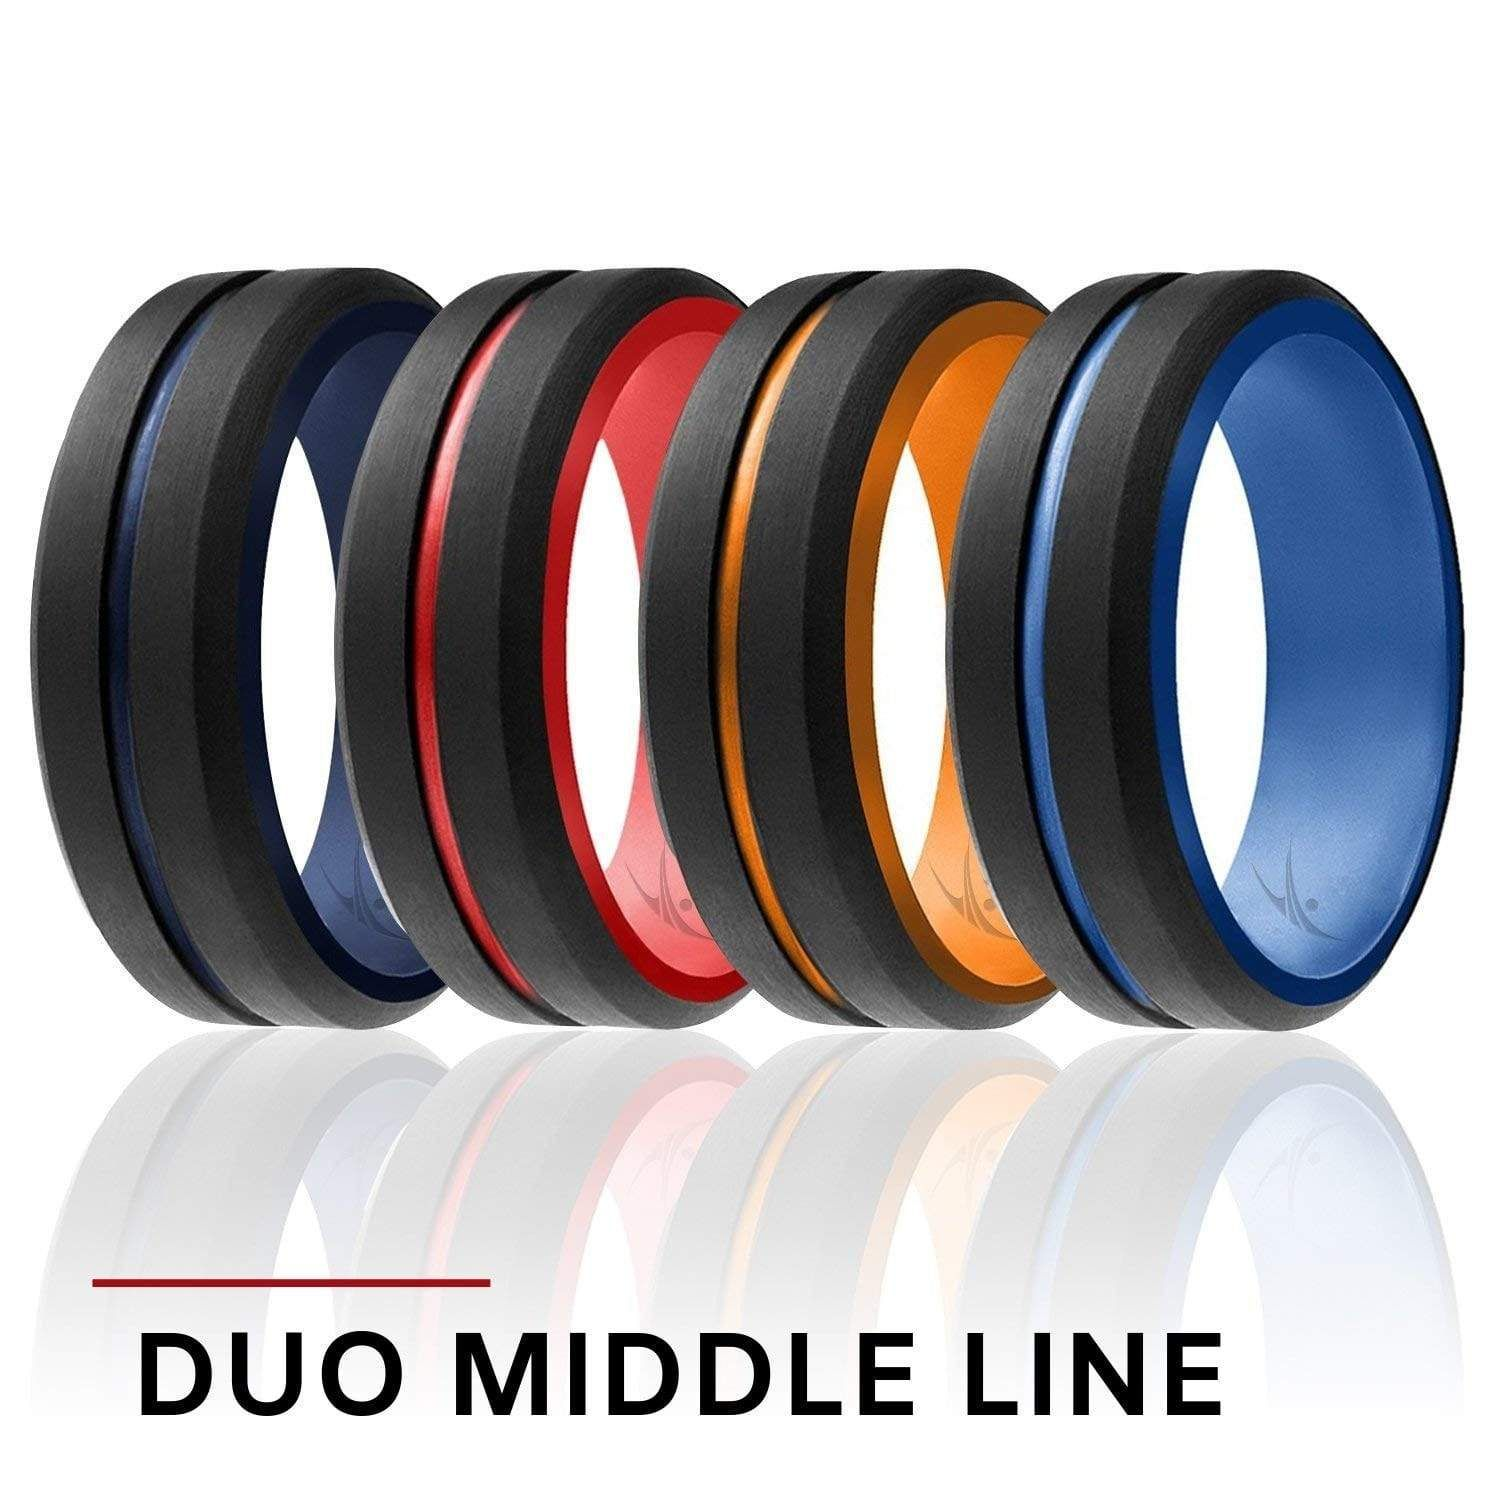 4 Pack Silicone Ring for Men Engraved Middle Line in